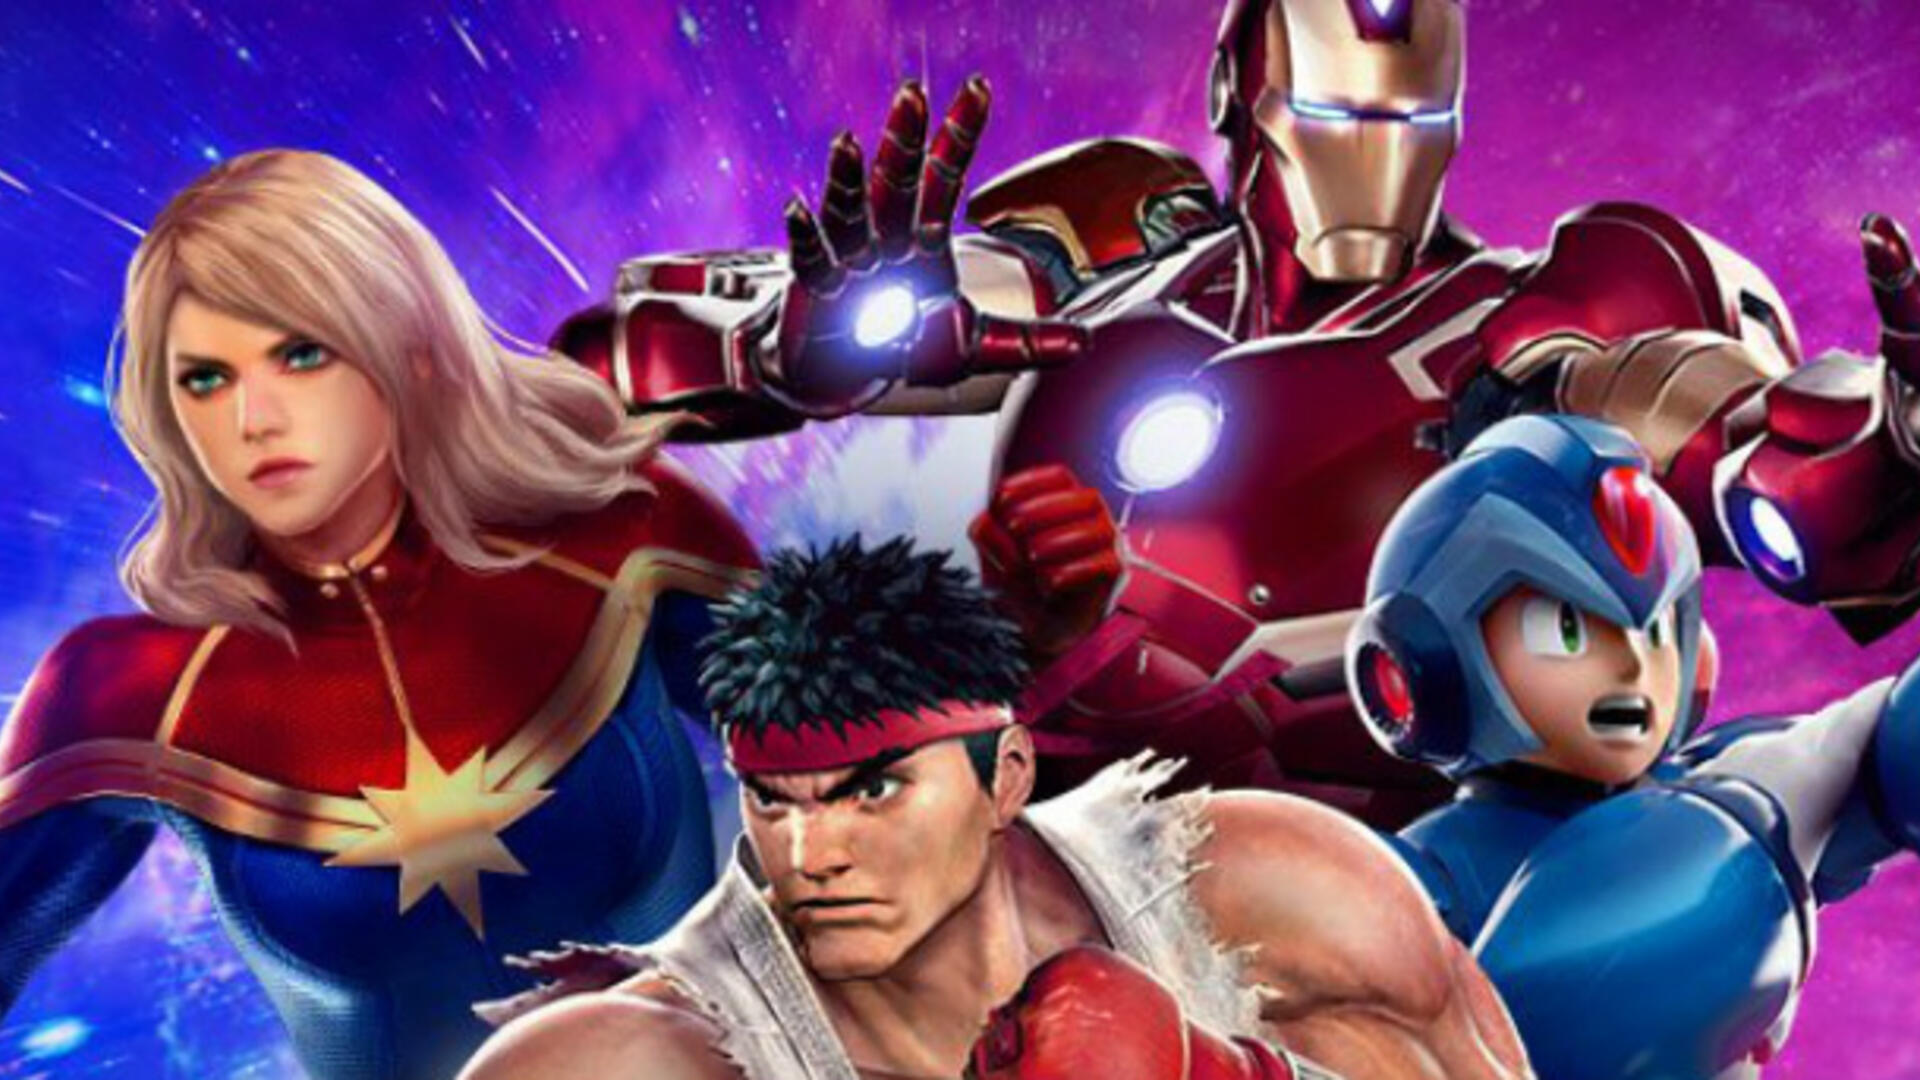 Marvel vs. Capcom: Infinite's Rumored Roster Is a Disappointing Mirror of MvC3